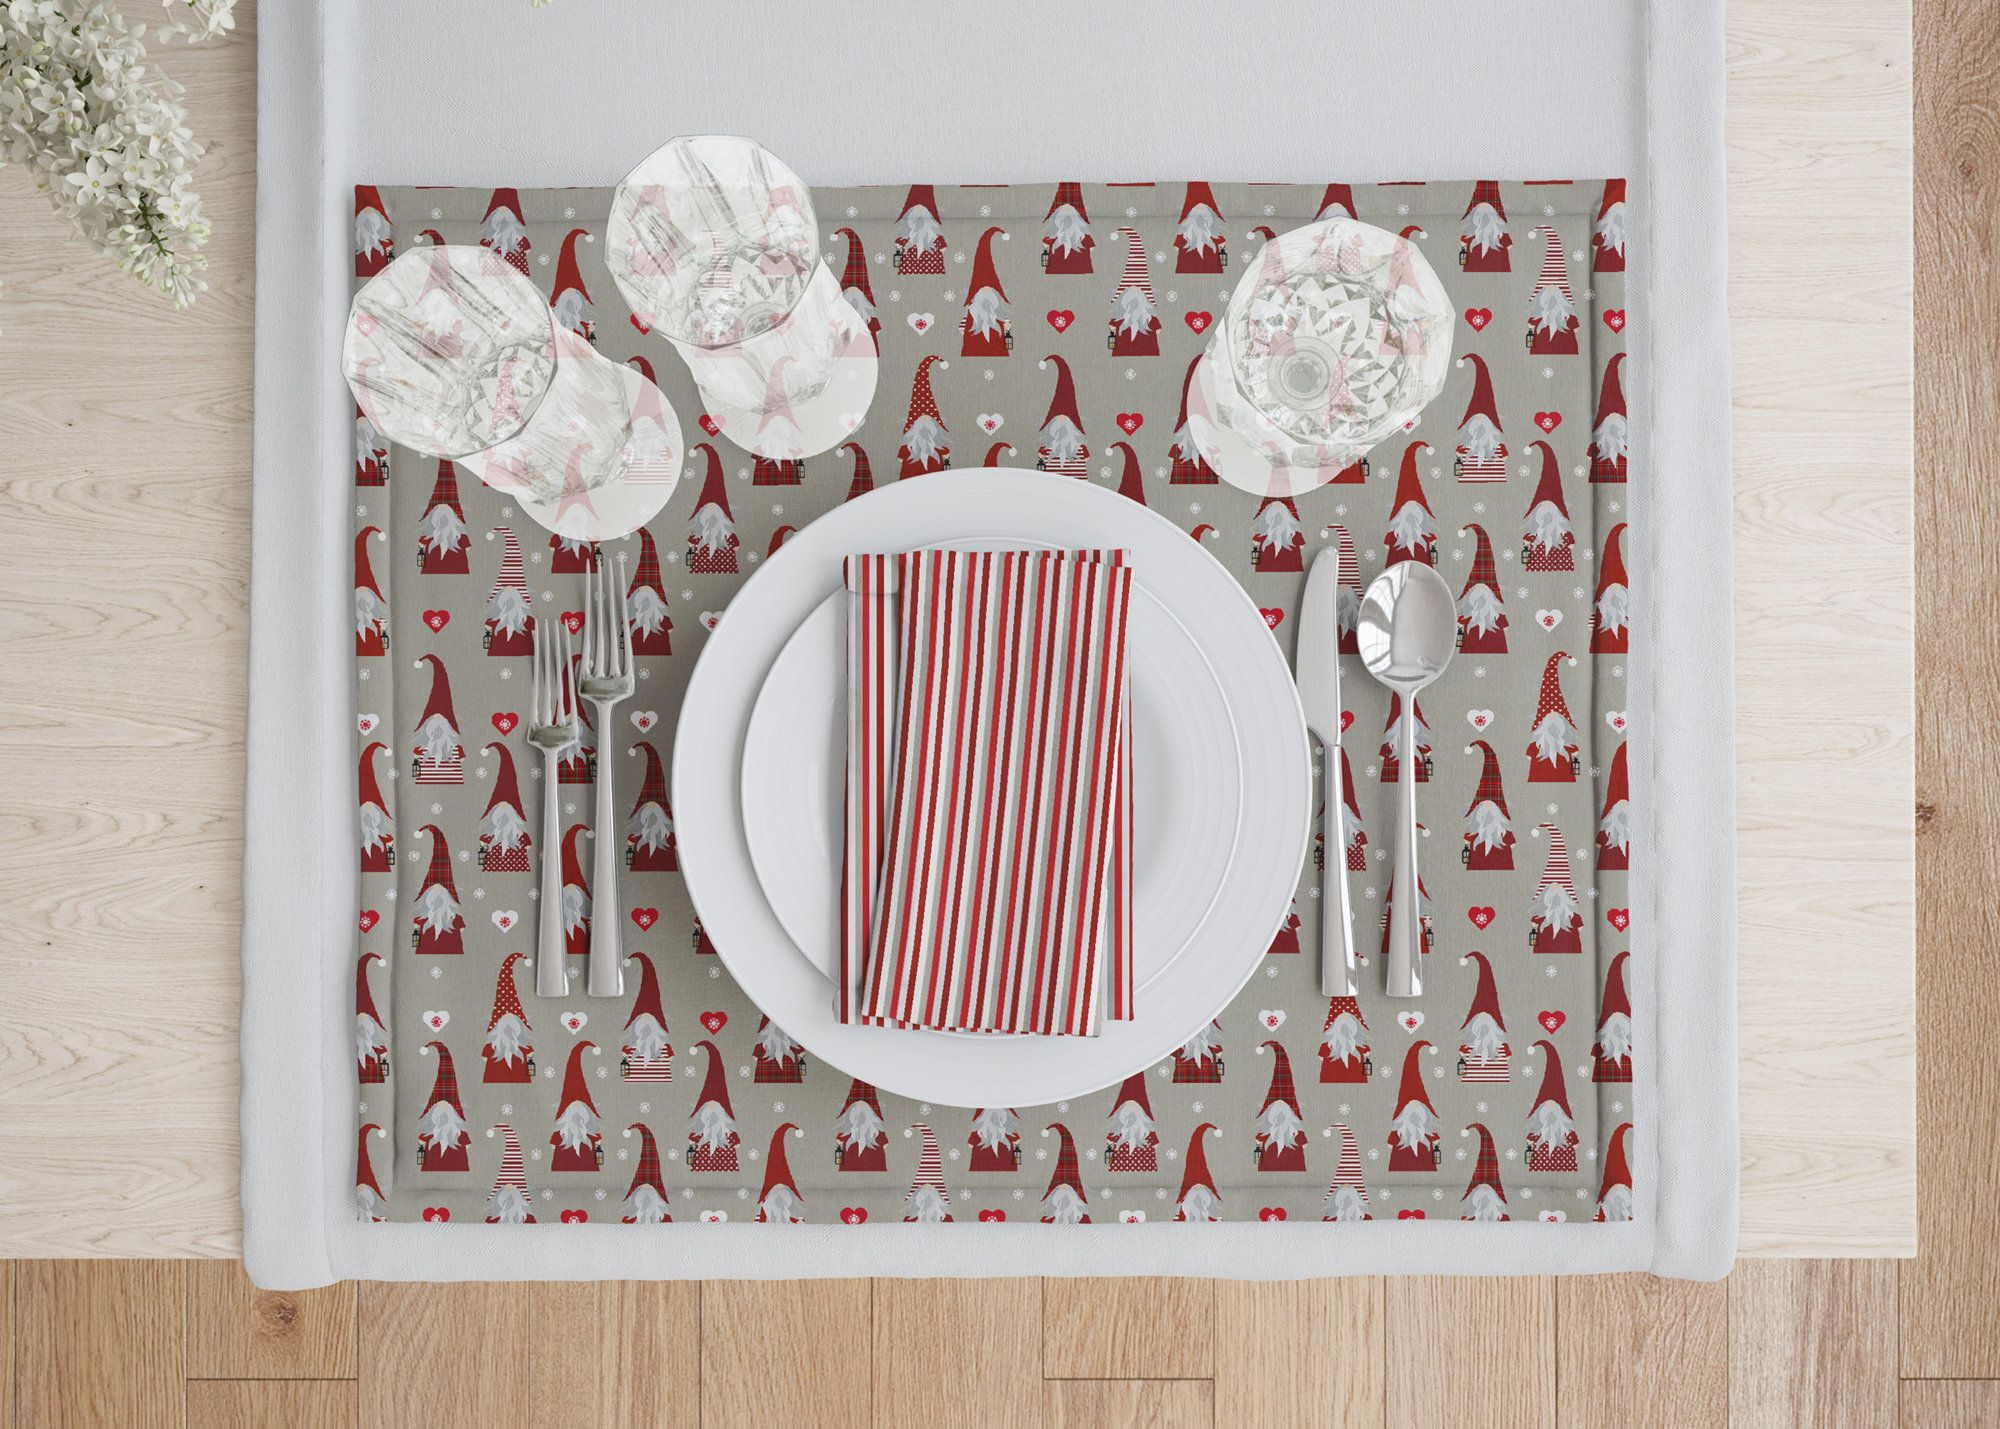 Christmas Placematsscandinavian Pattern Placemat Etsy Christmas Table Decorations Placemat Design Christmas Table